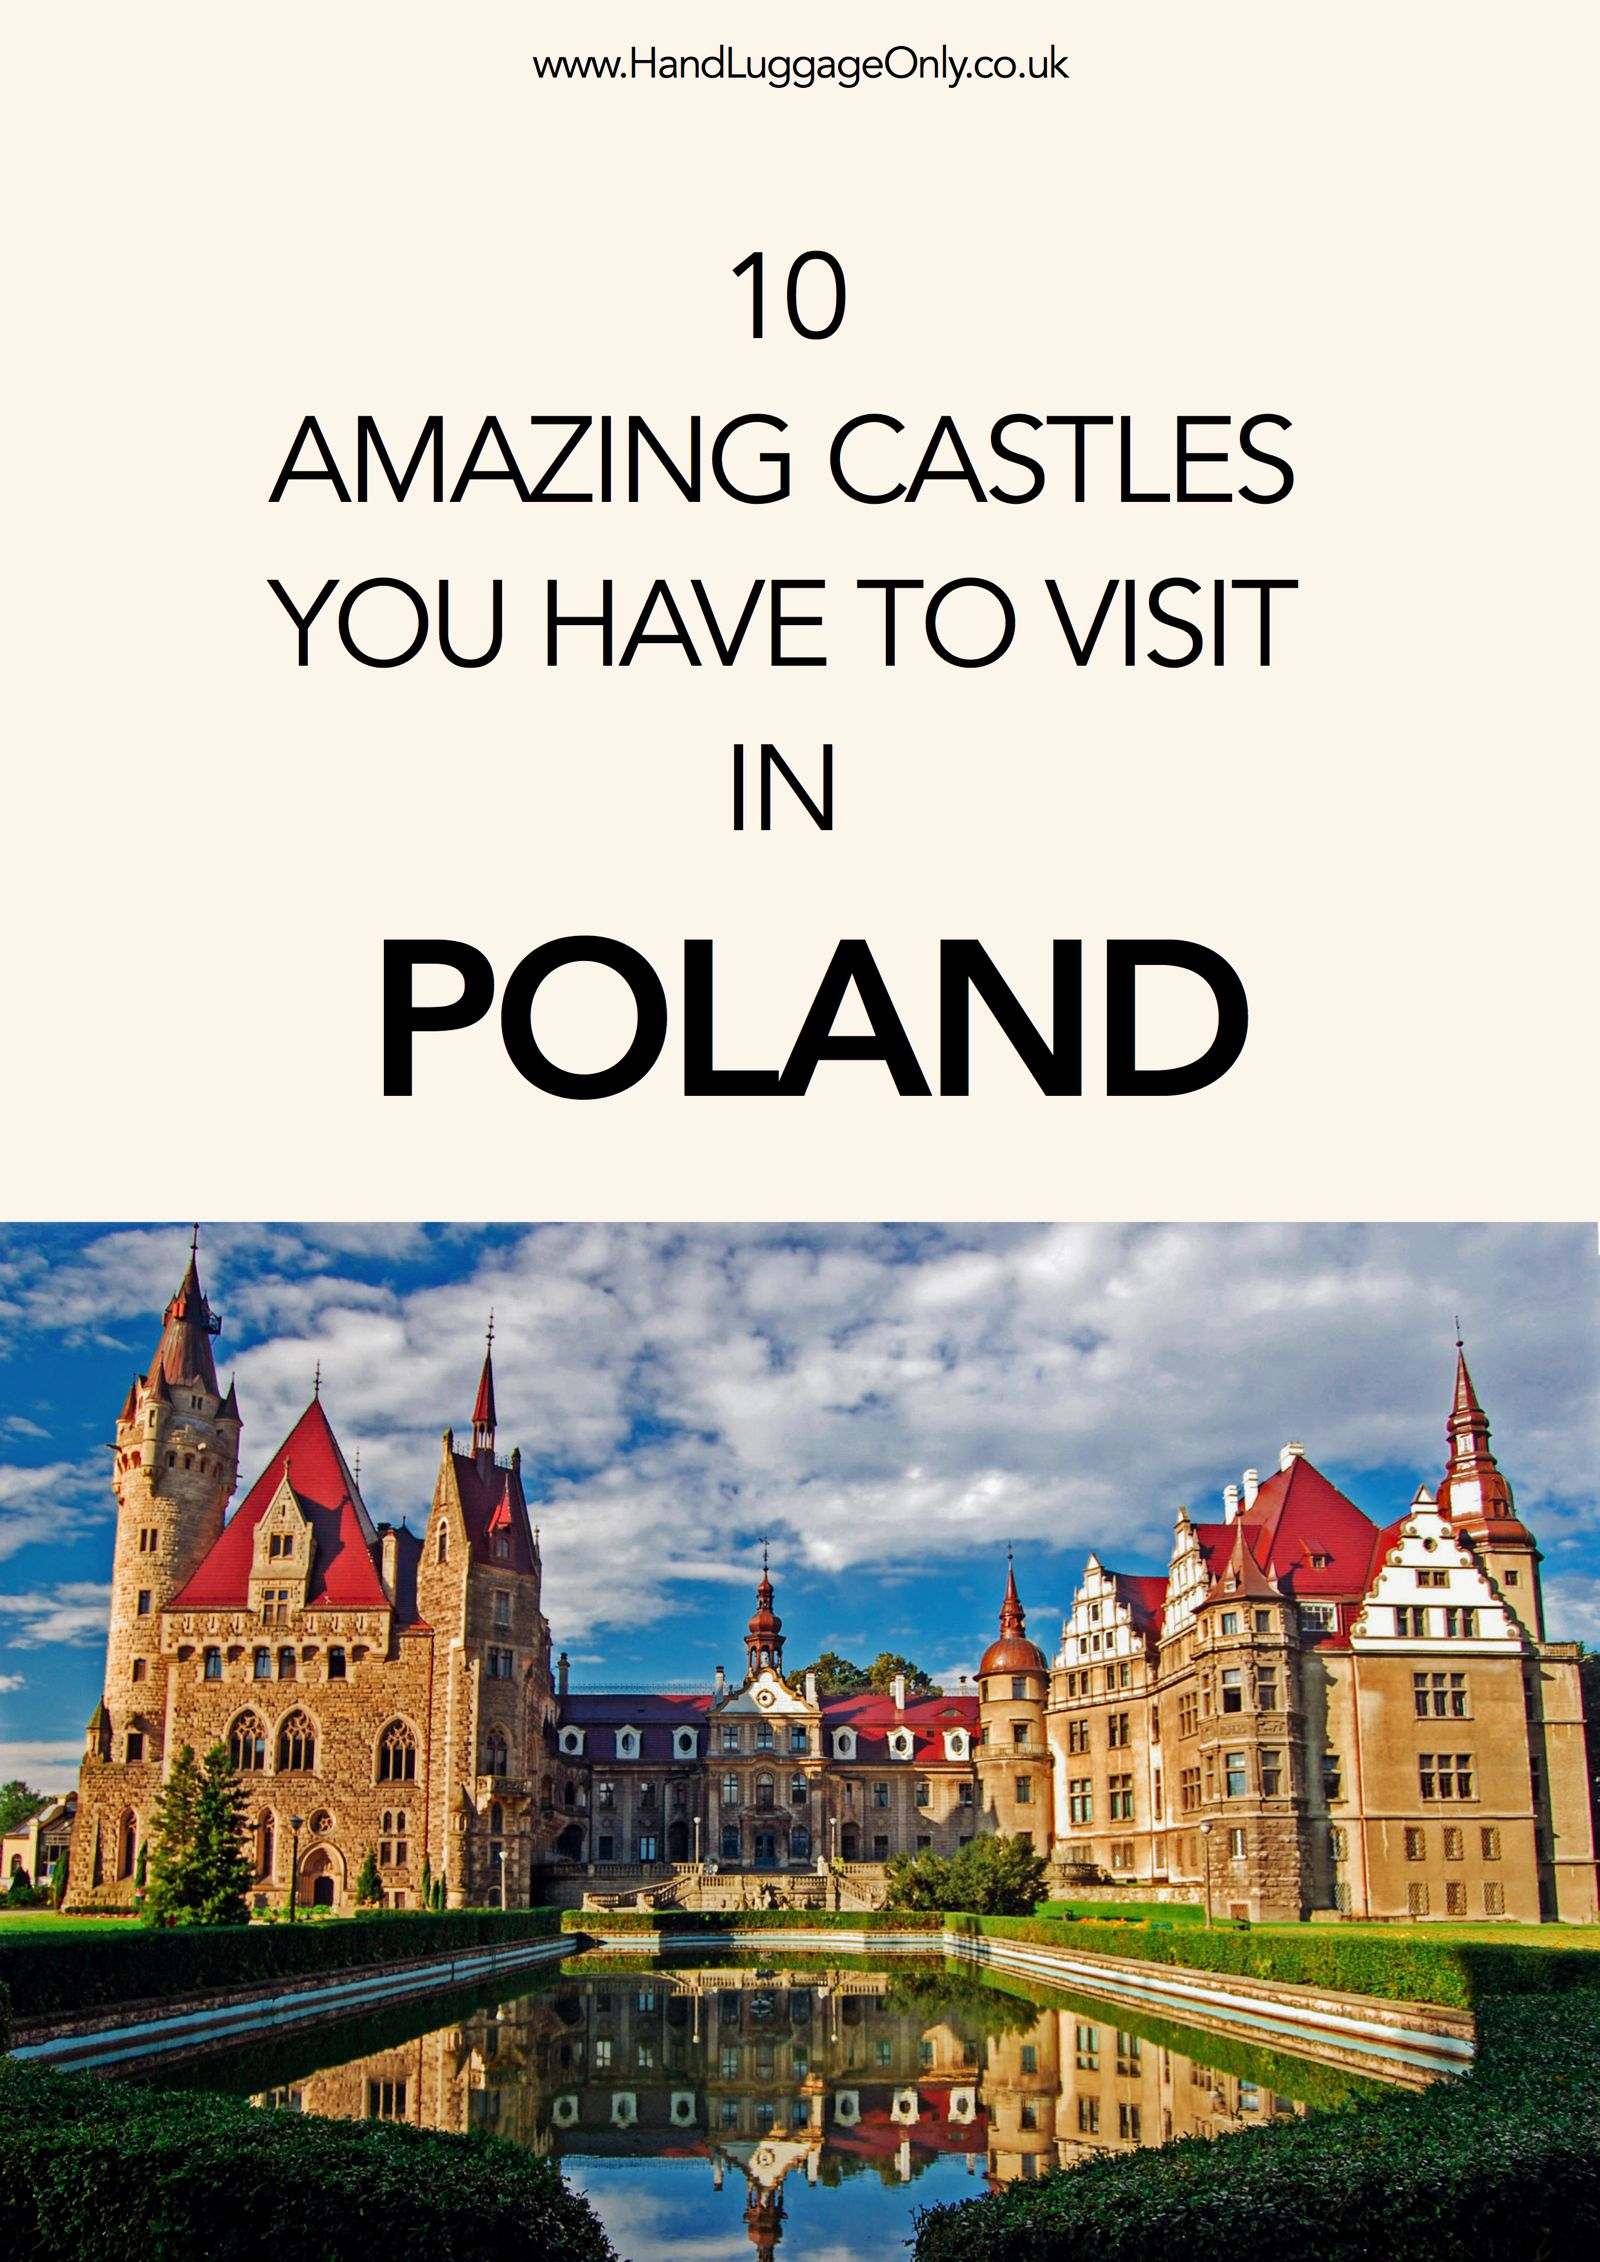 10 Amazing Castles You Have To Visit In Poland (1)